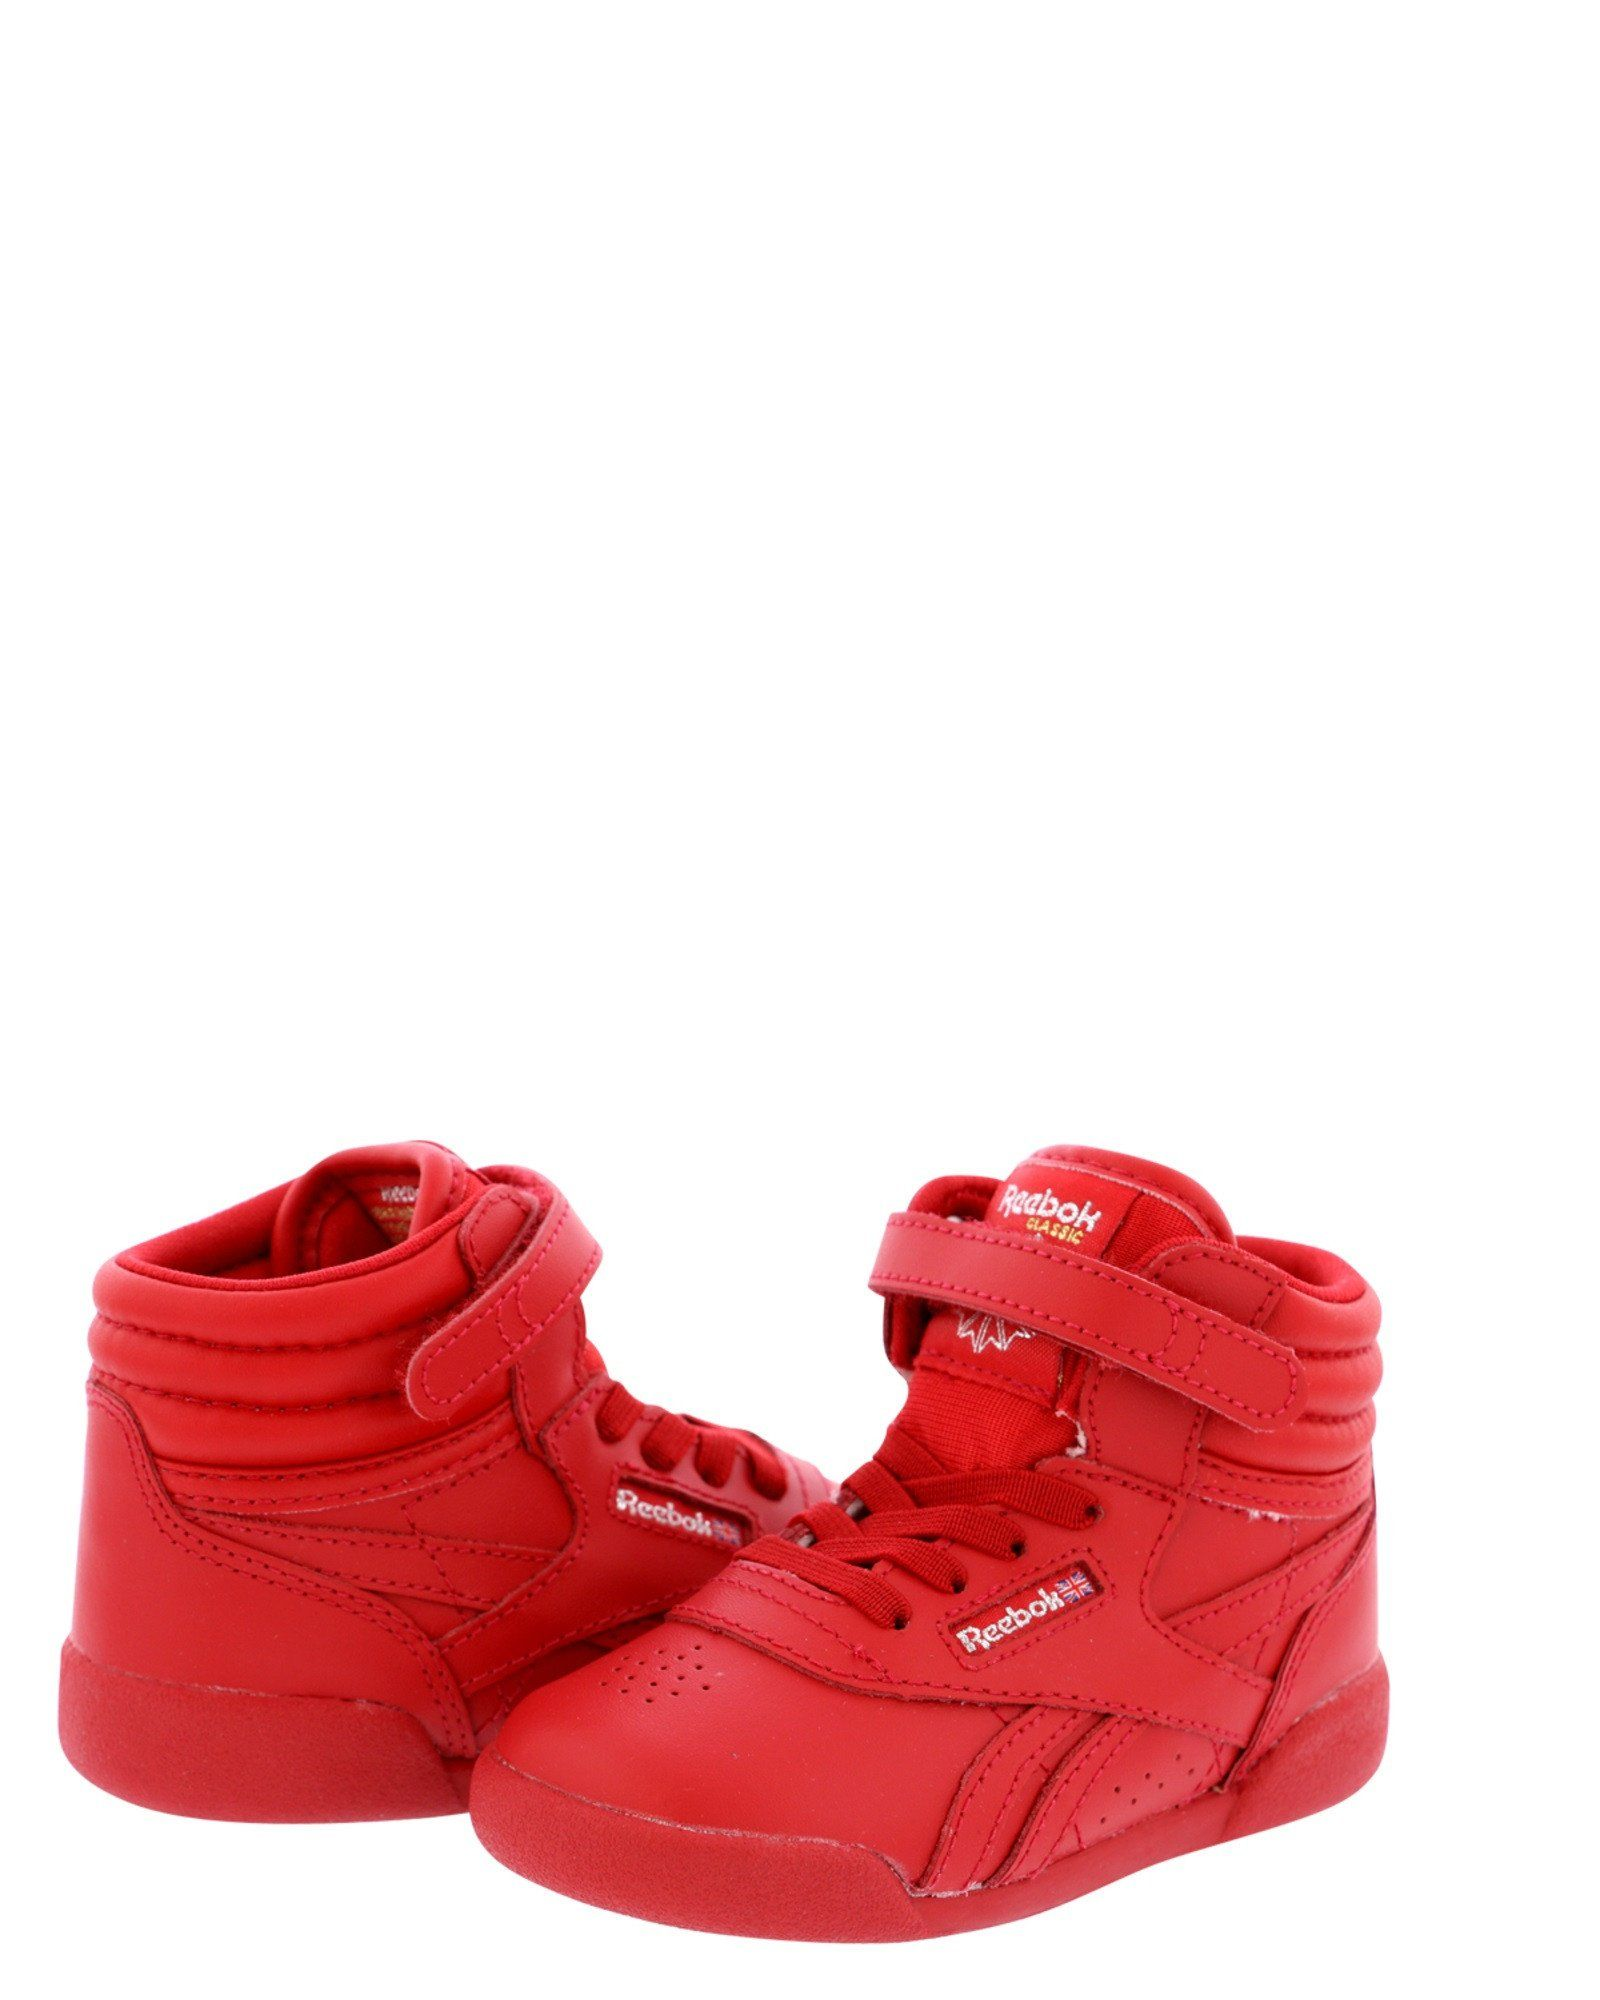 Pin on Red High Top Products